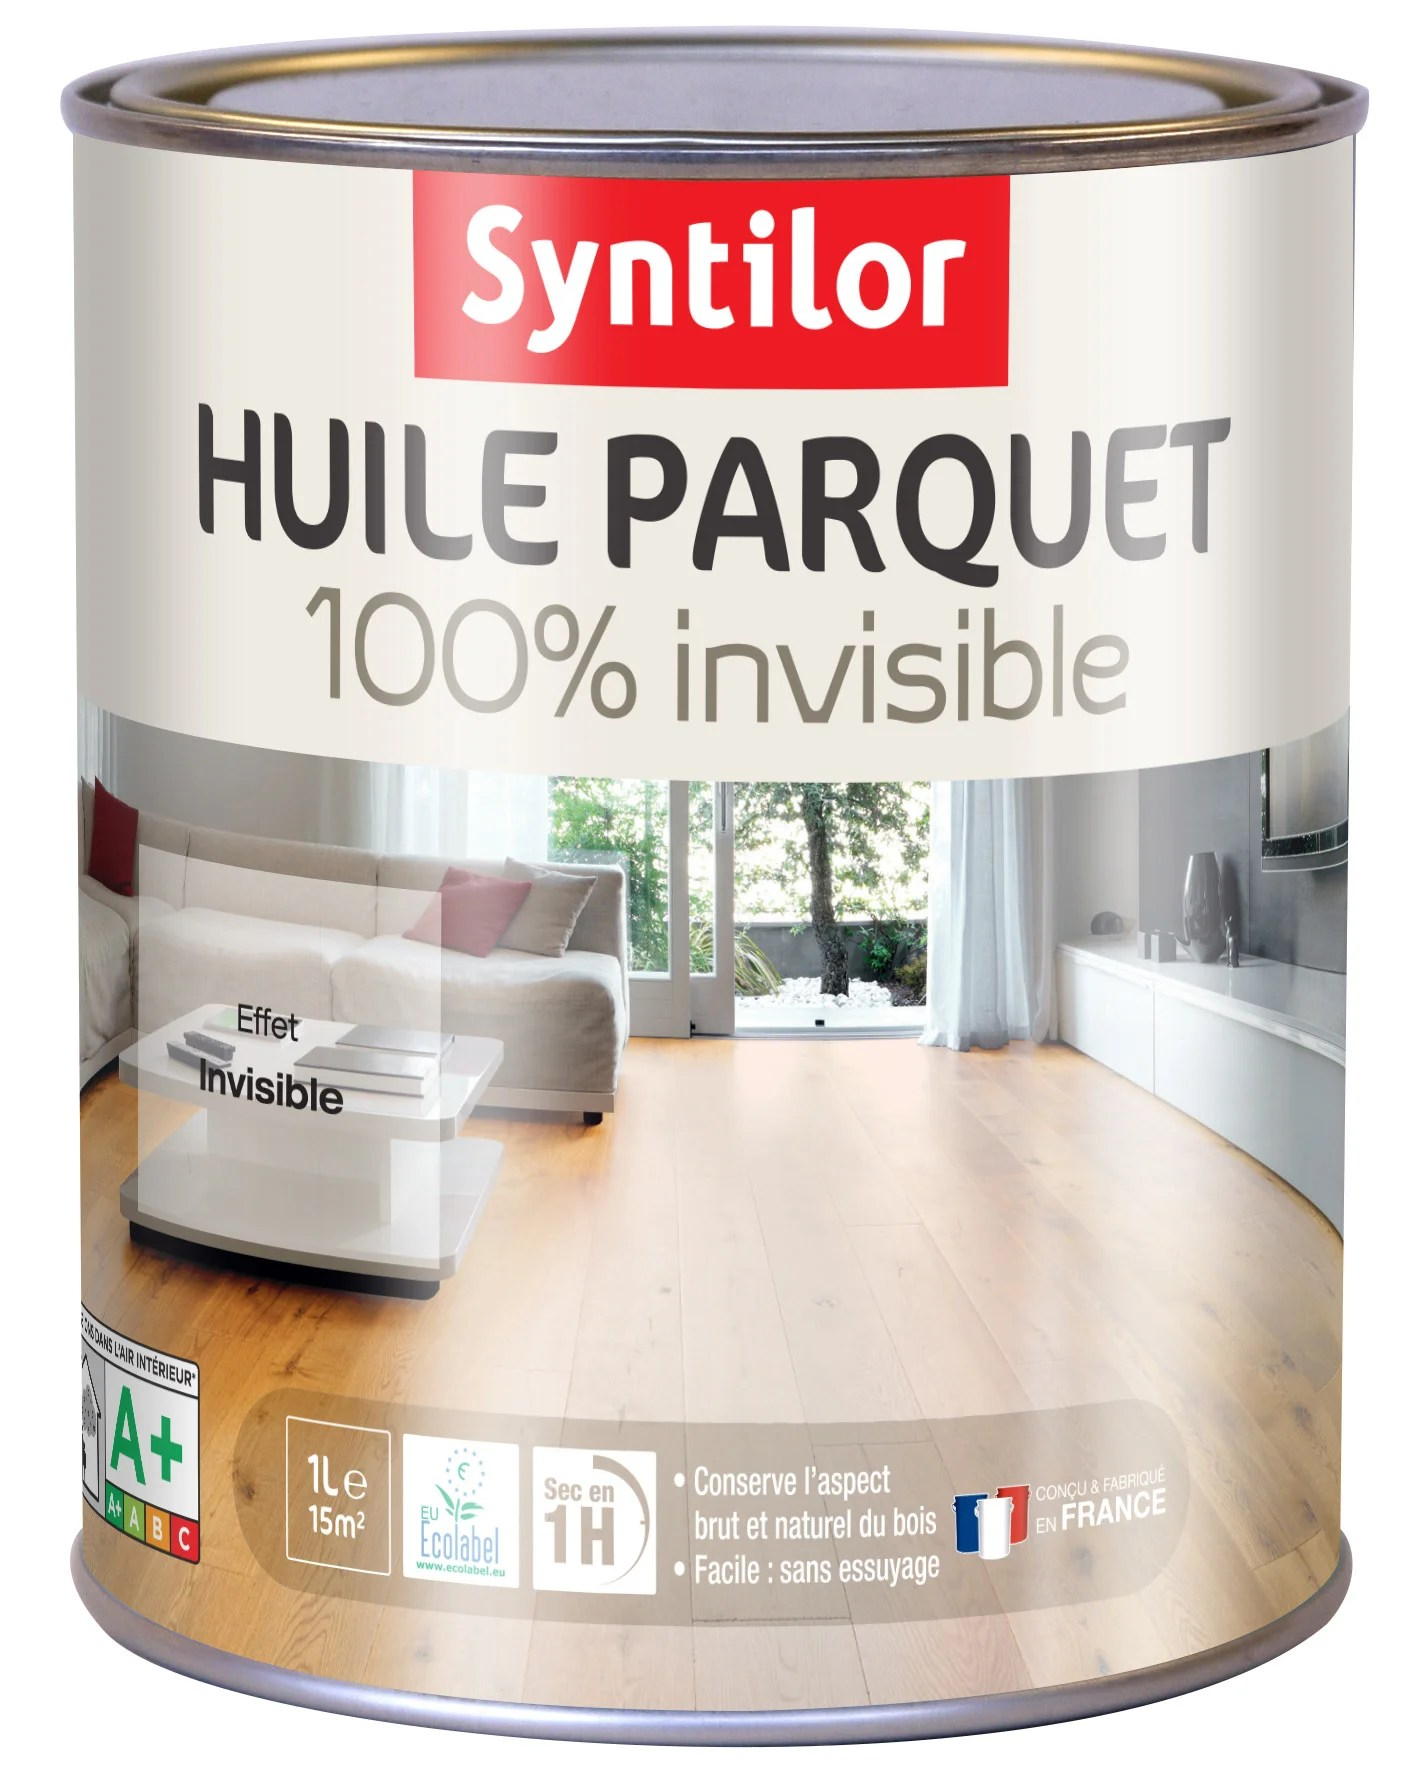 Huile Parquet 100 Invisible Syntilor 1 L Incolore Leroy Merlin